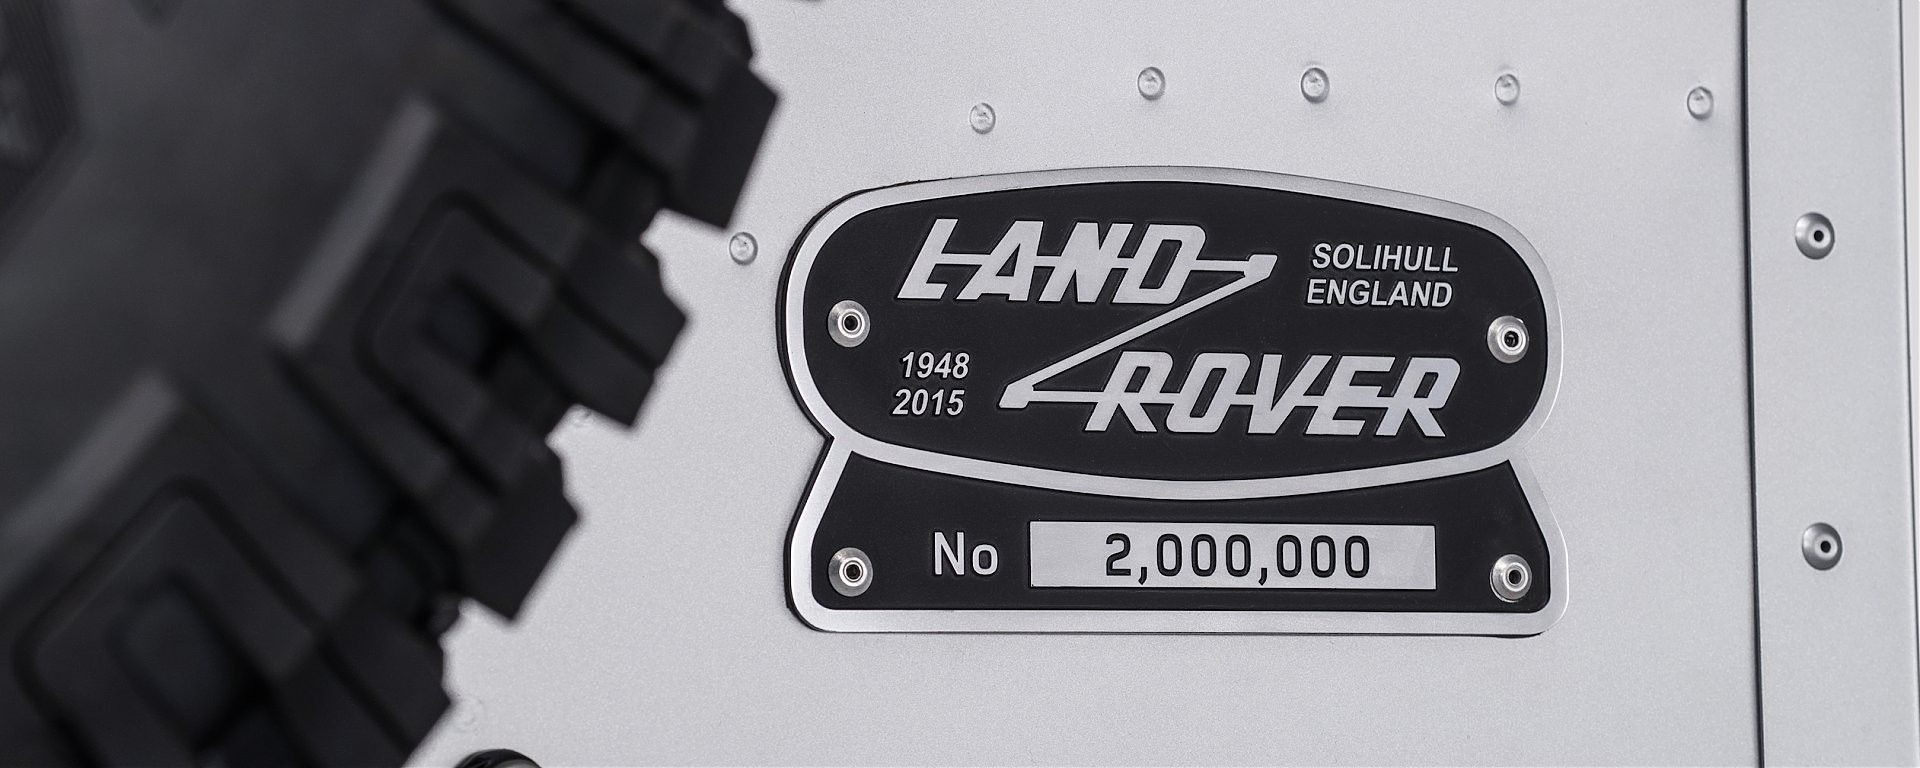 Land Rover Defender 2.000.000th